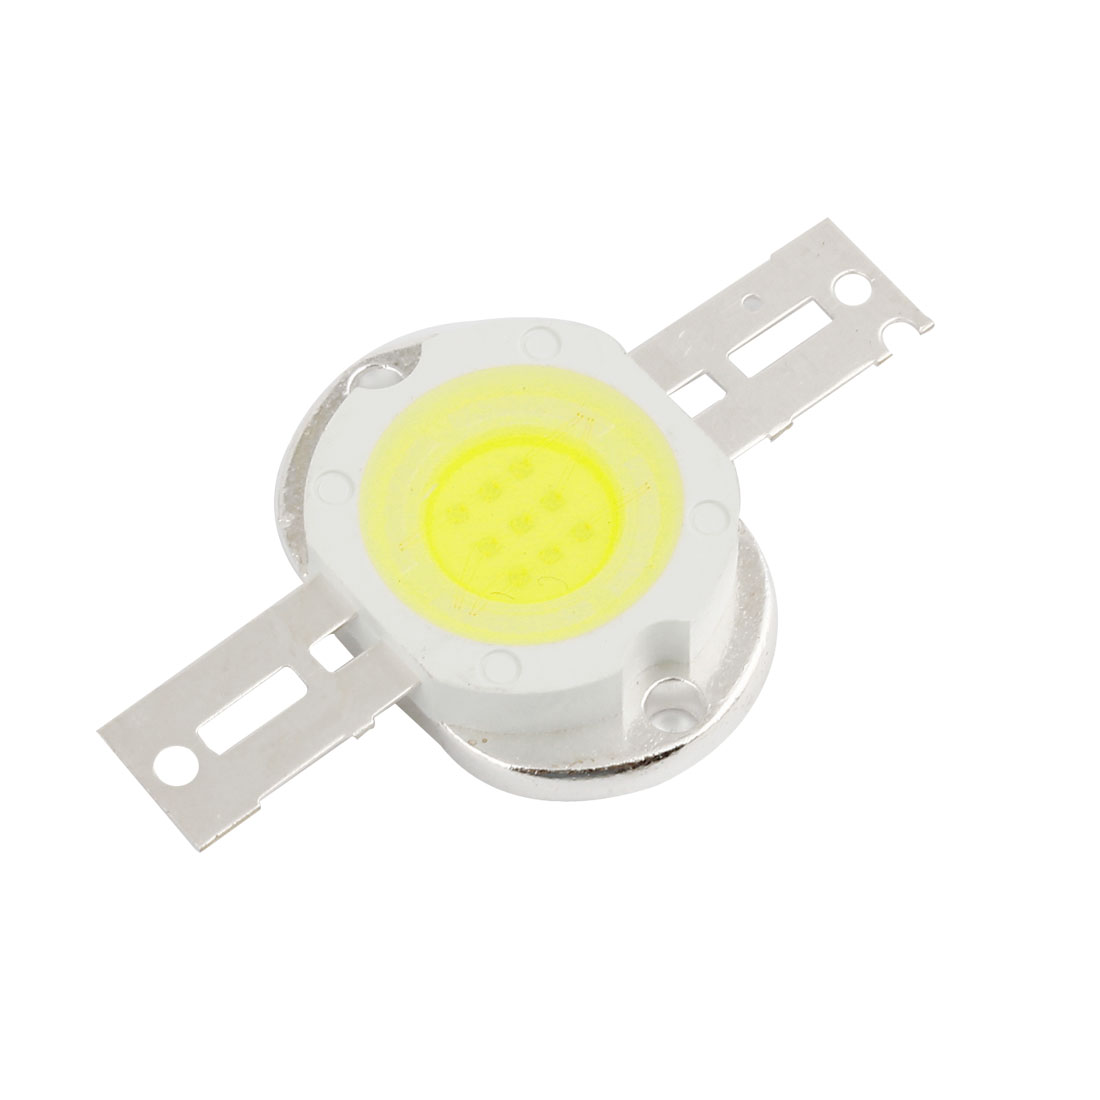 10-12V 800-900mA 10W Pure White Light High Power Lamp Bulb COB Spot LED SMD Chip